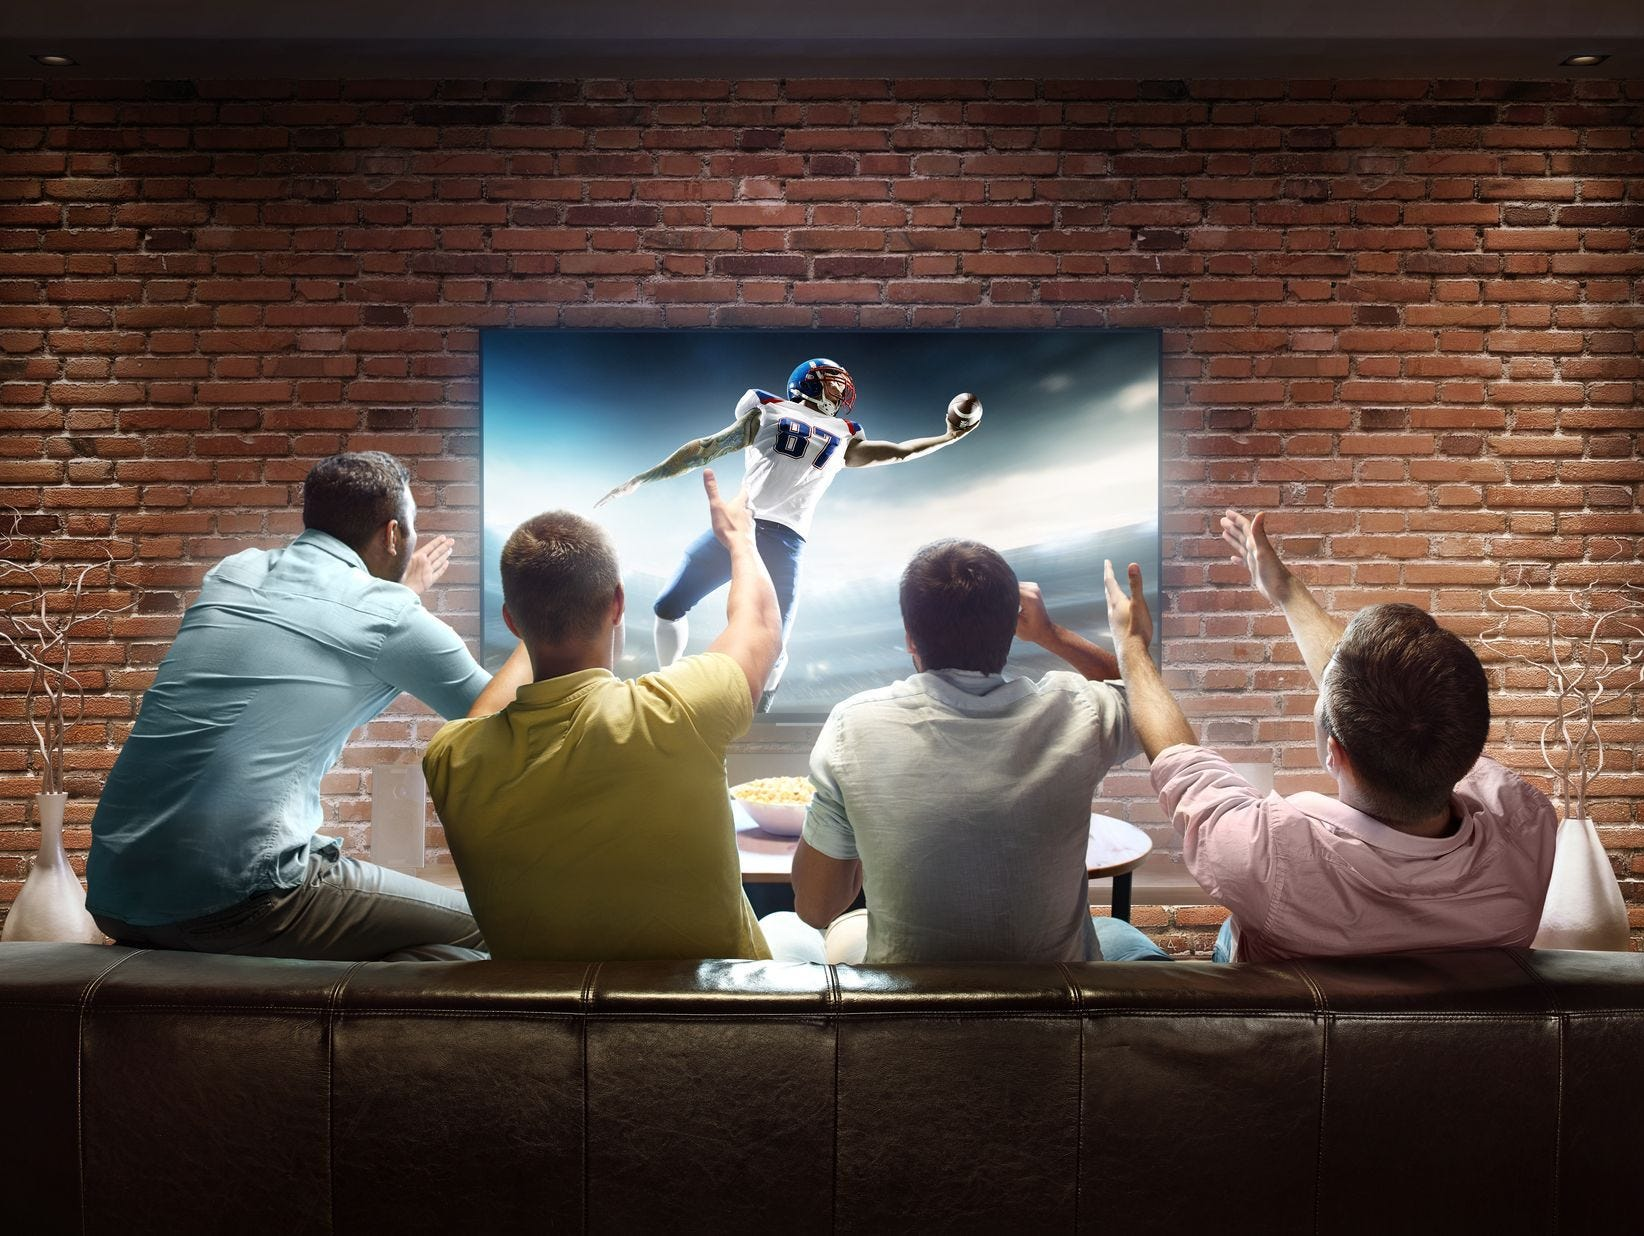 Impress your guests with your brand new 55-inch smart LED TV. Enter 1/2-1/21